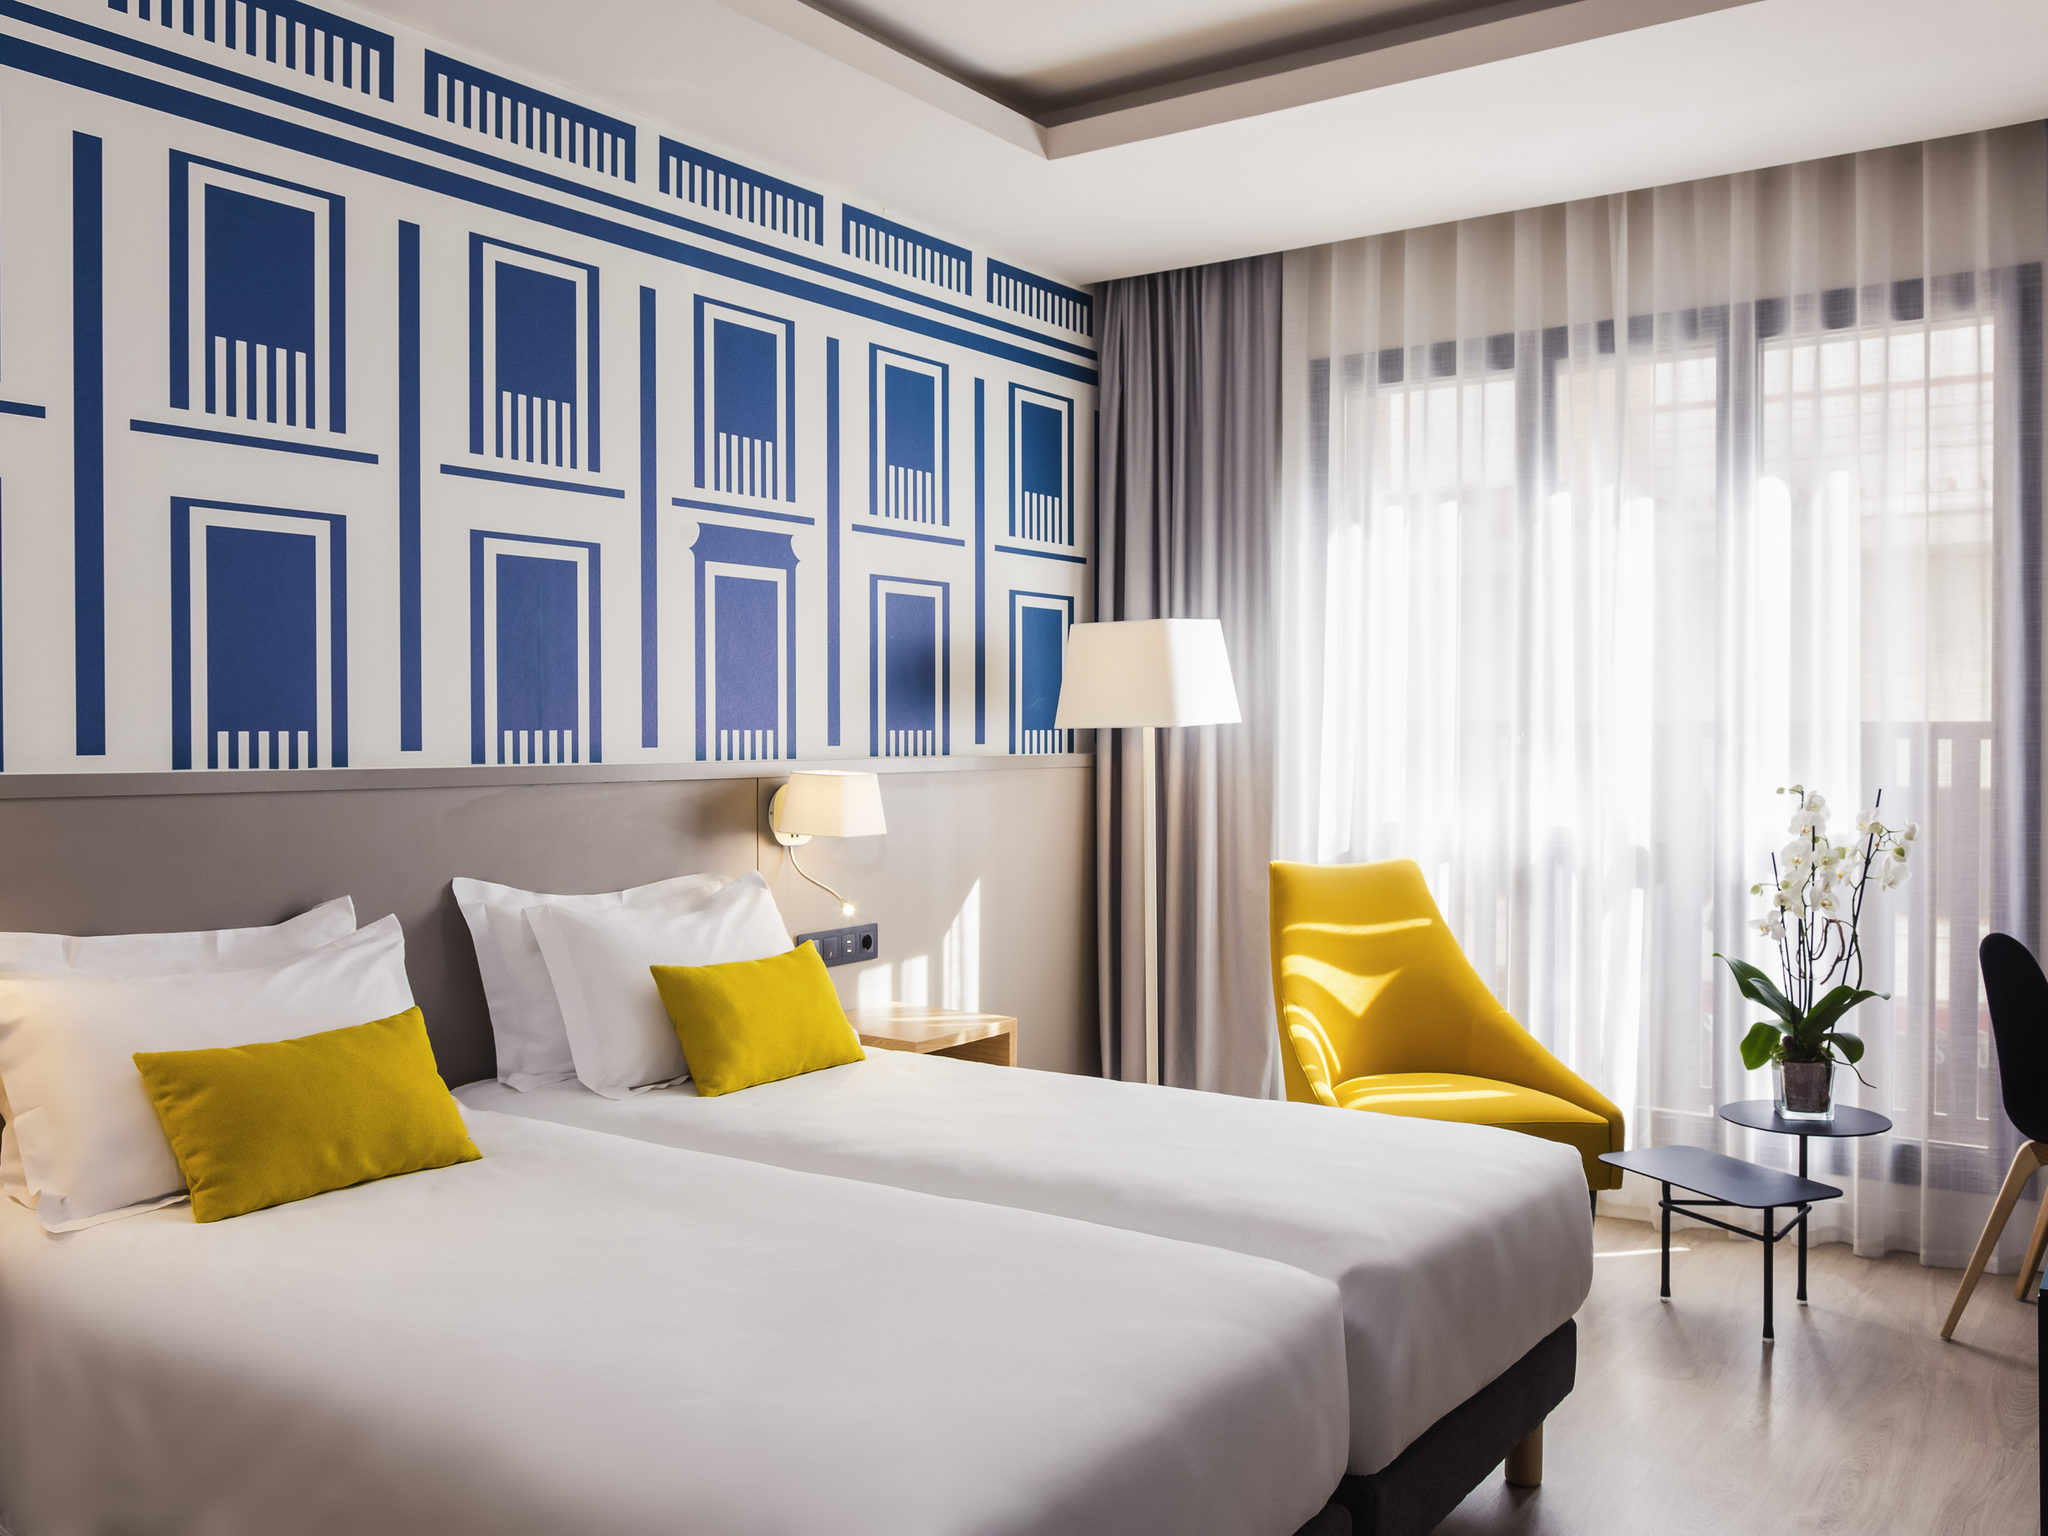 Mercure Hotel in MADRID PLAZA DE ESPAÑA for business or pleasure on